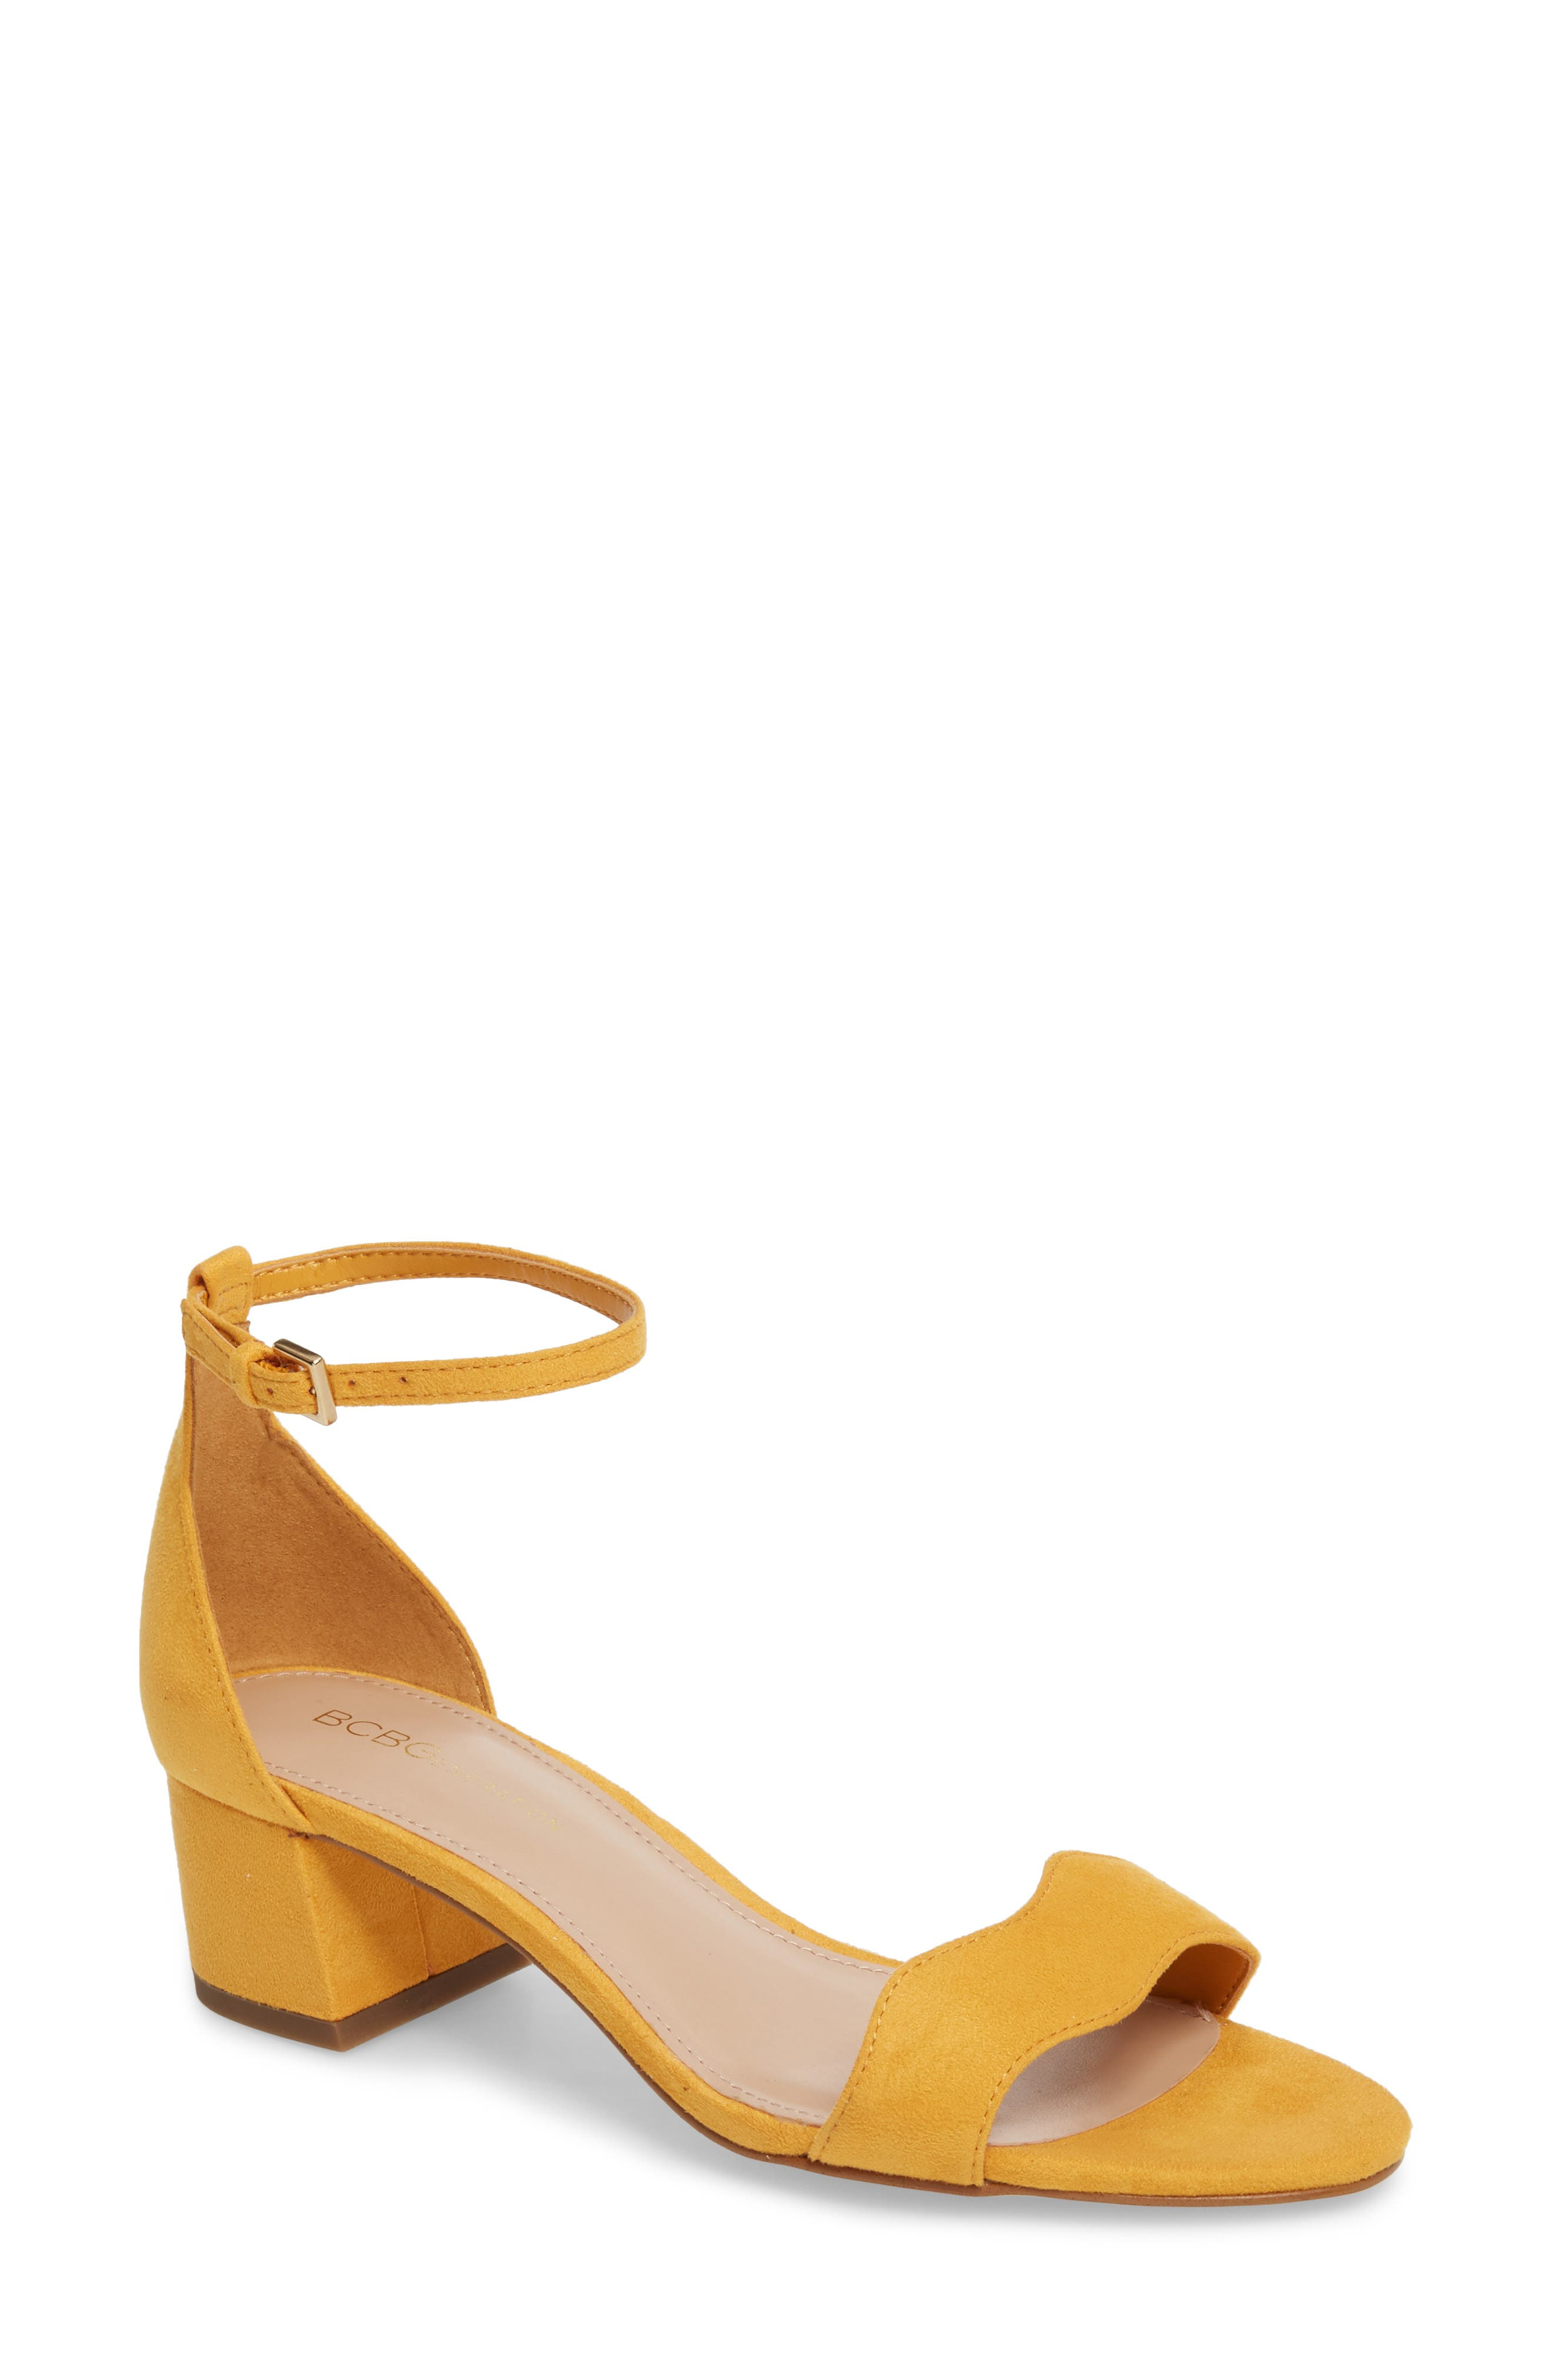 Farlyn Ankle Strap Sandal, Main, color, 700